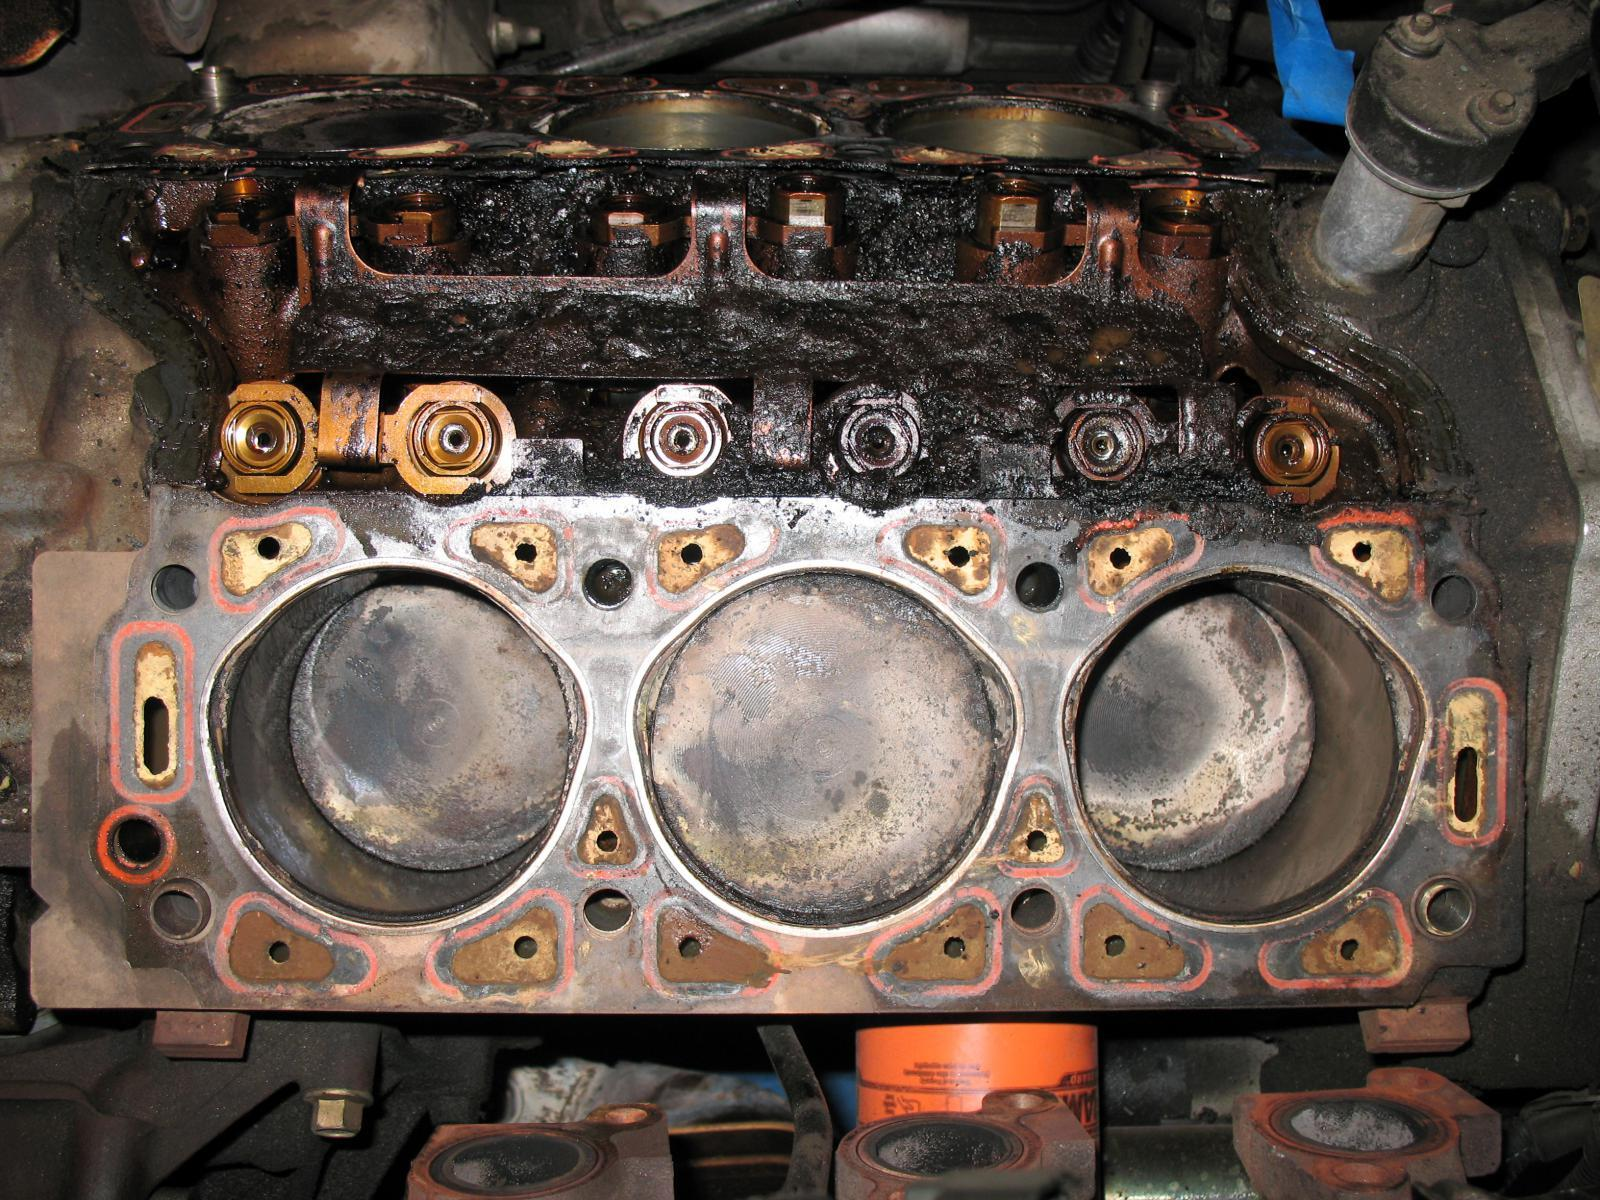 White Smoke From Exhaust Main Causes And How To Fix 2001 Kia Sportage Engine Diagram Egr Head Gasket Is Also Needed Some Attention